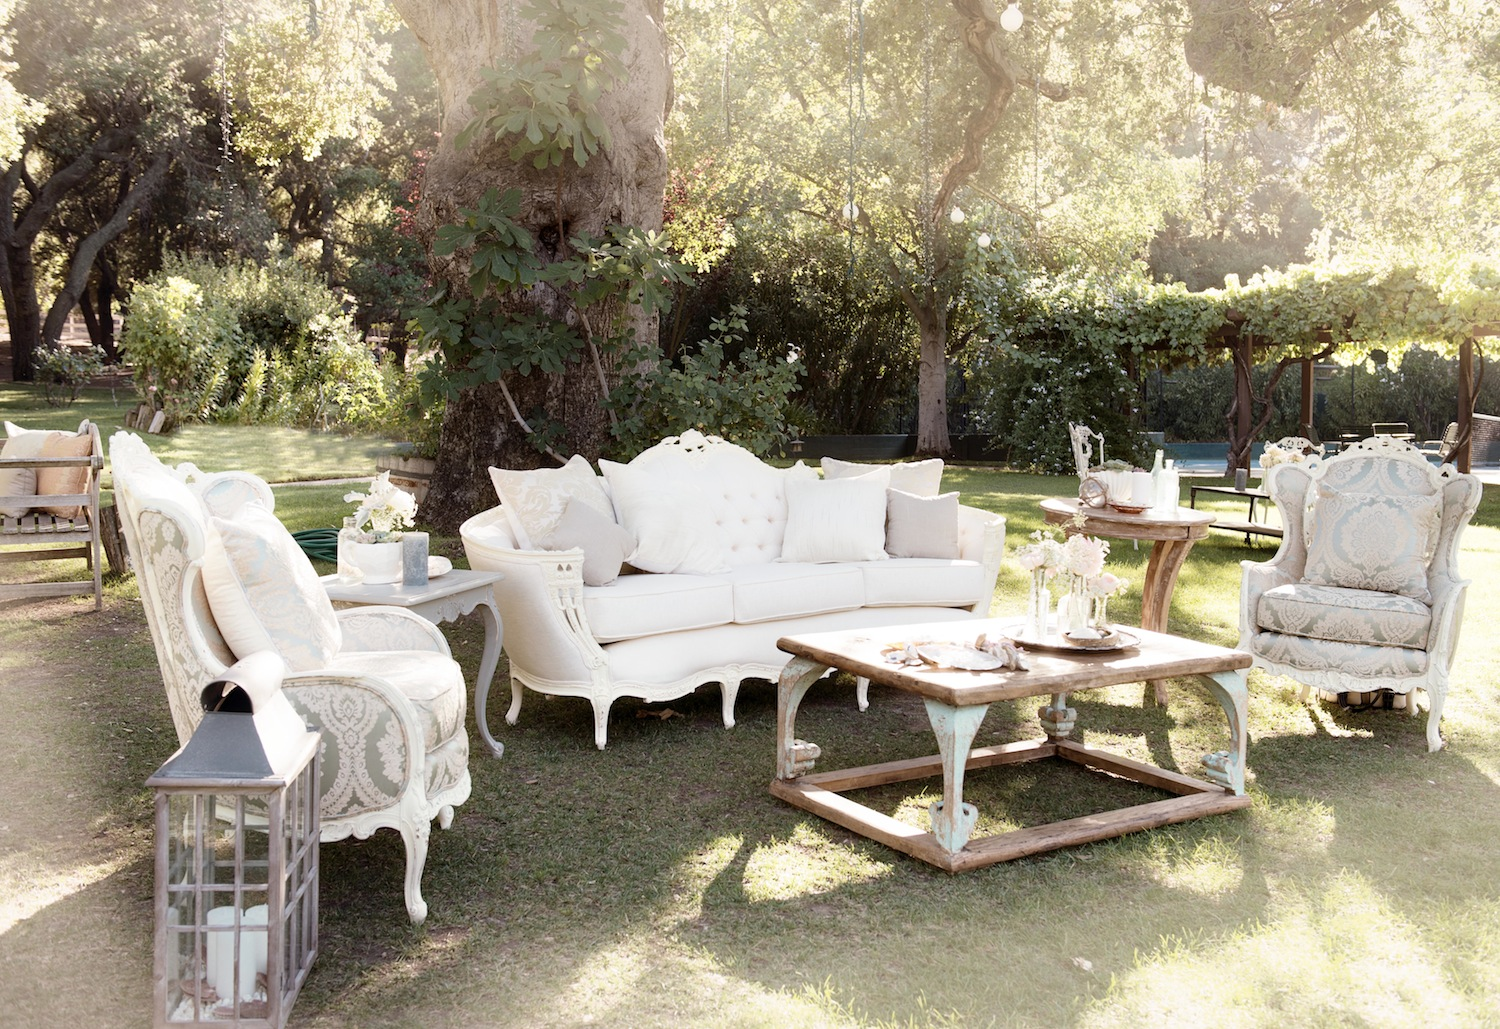 Tufted Furniture Rentals: Give Your Wedding A Glam Look